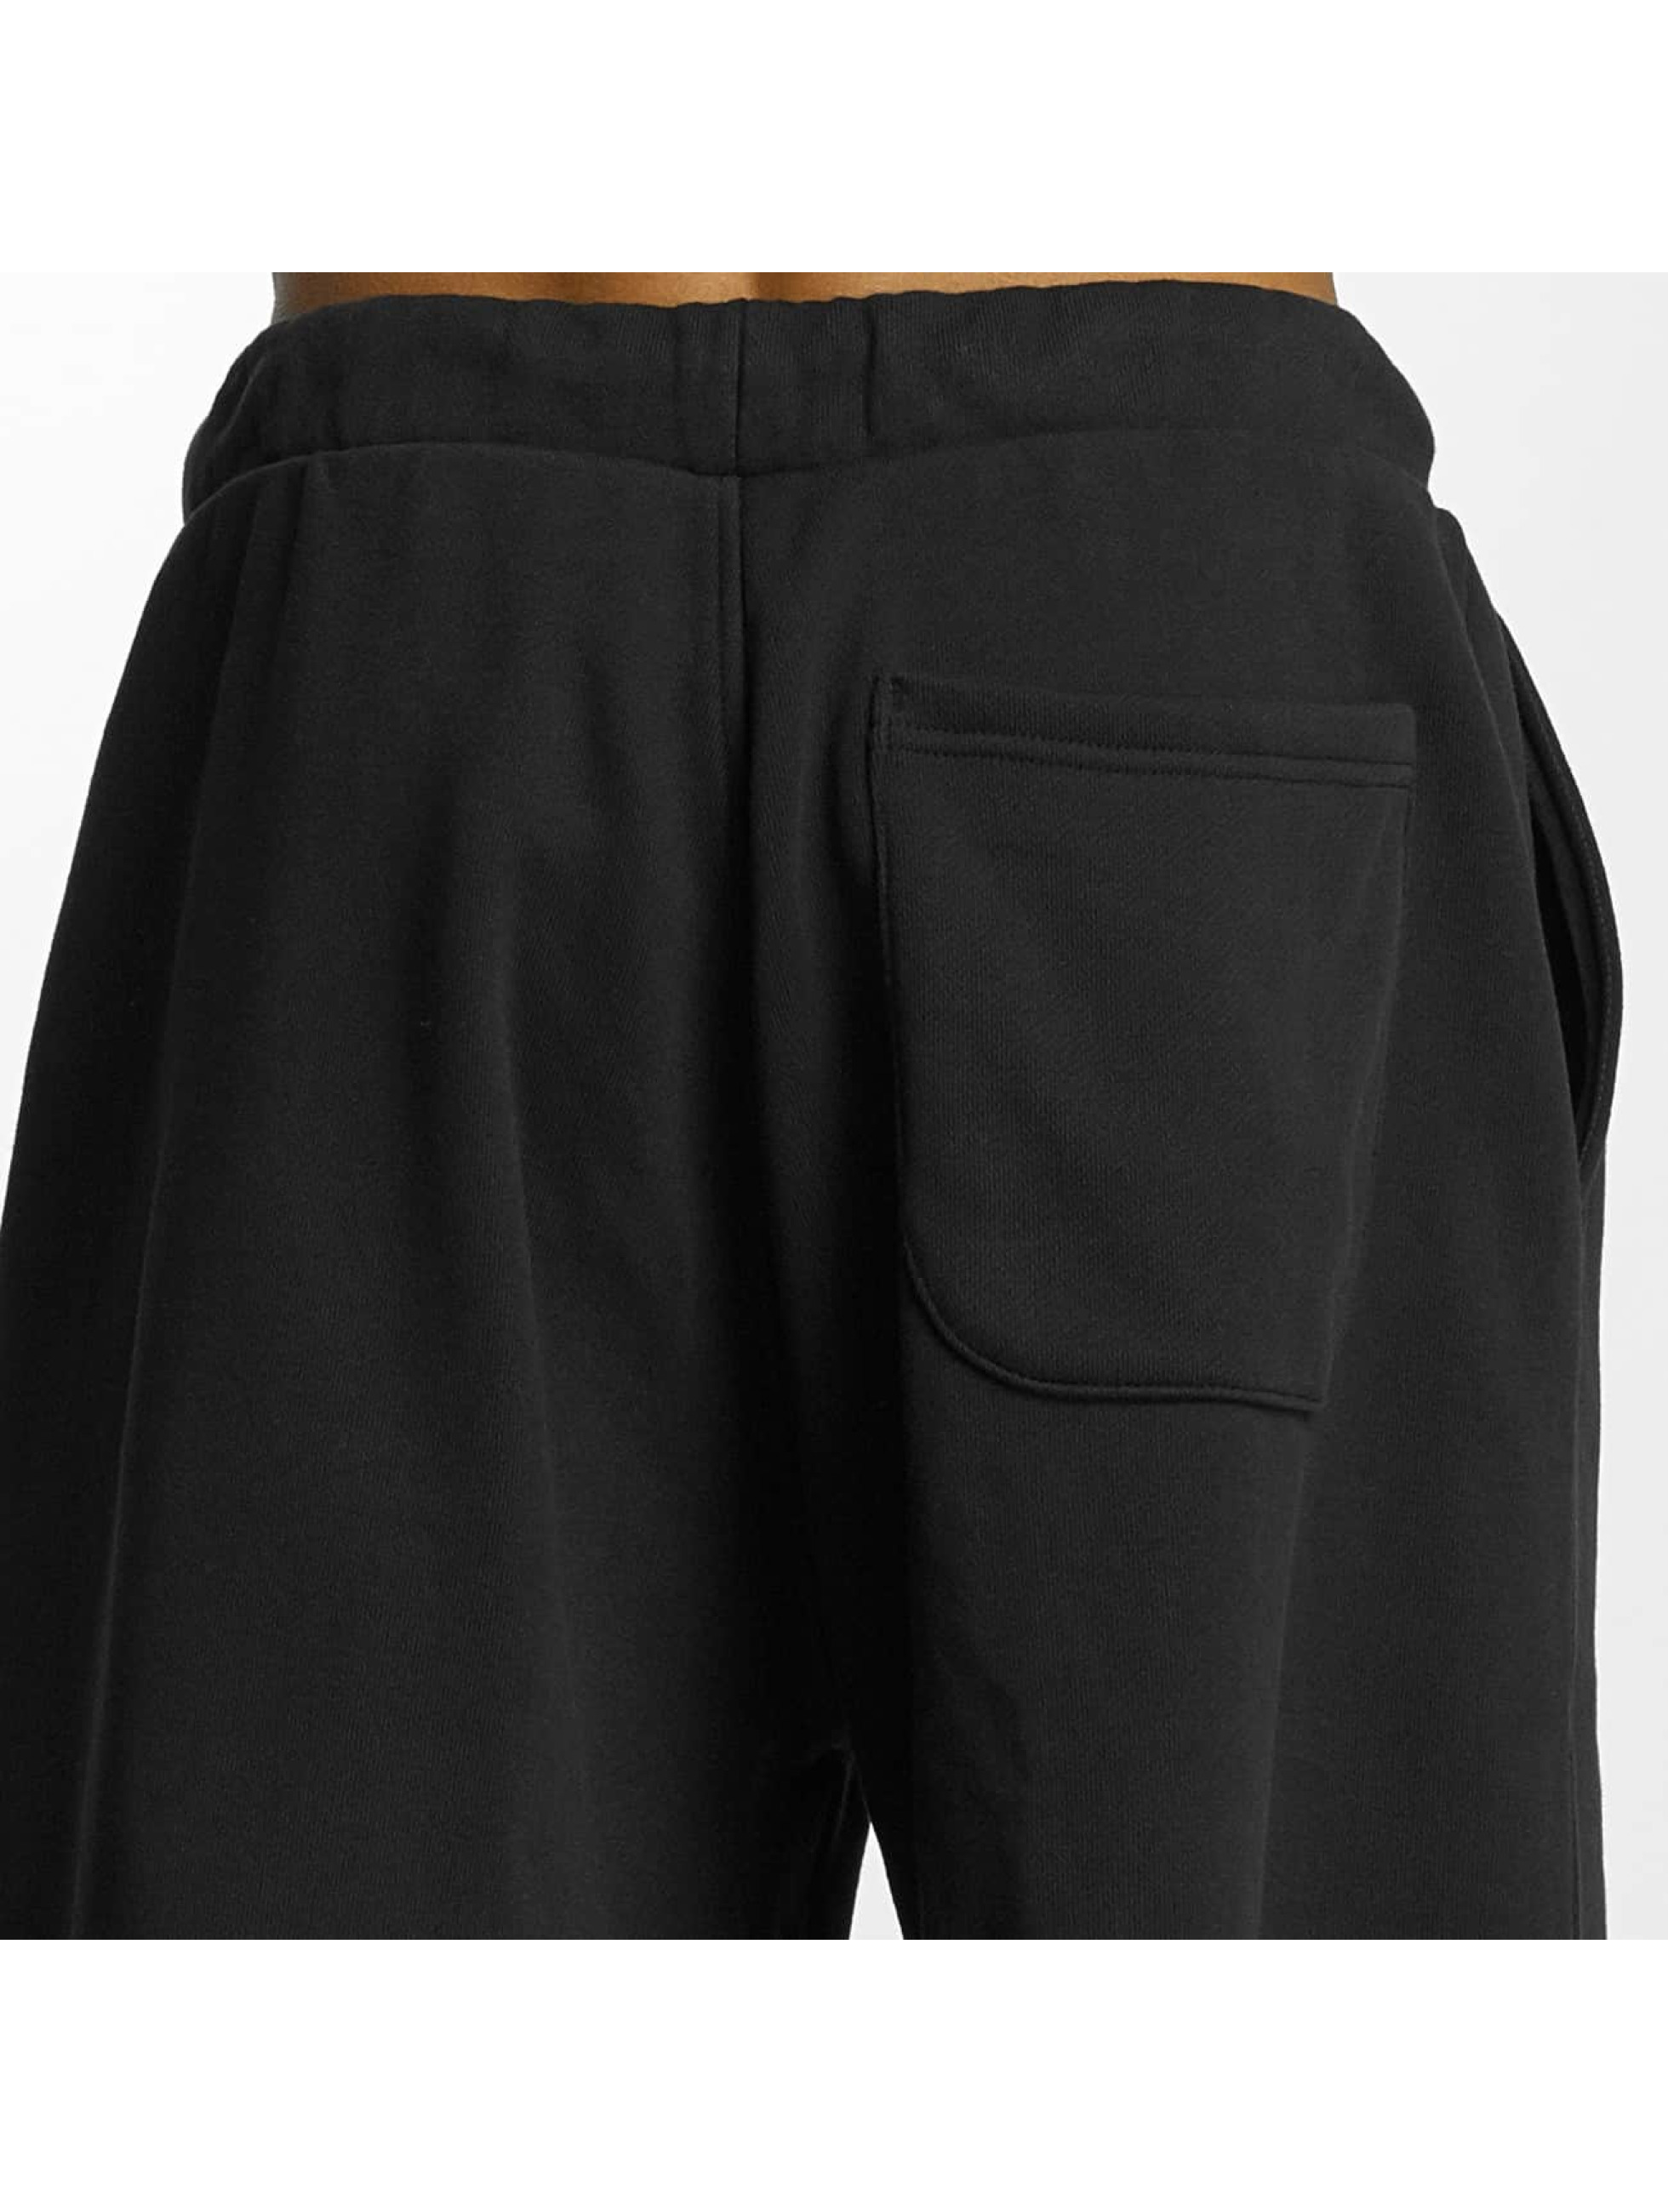 adidas originals Short ADC F noir